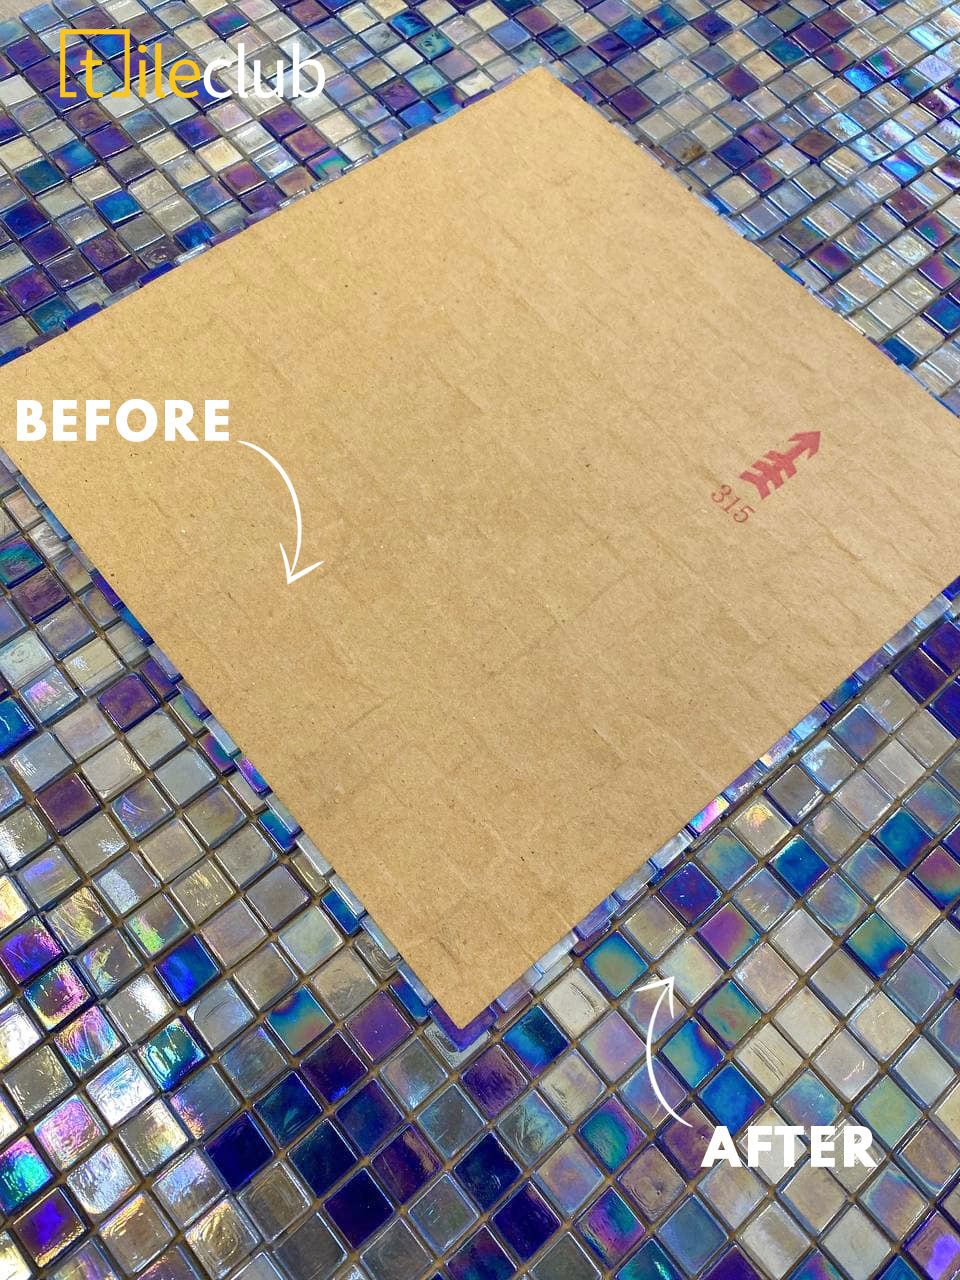 How to Install Mosaic Tiles with Paper Facing Instead of Mesh Backing